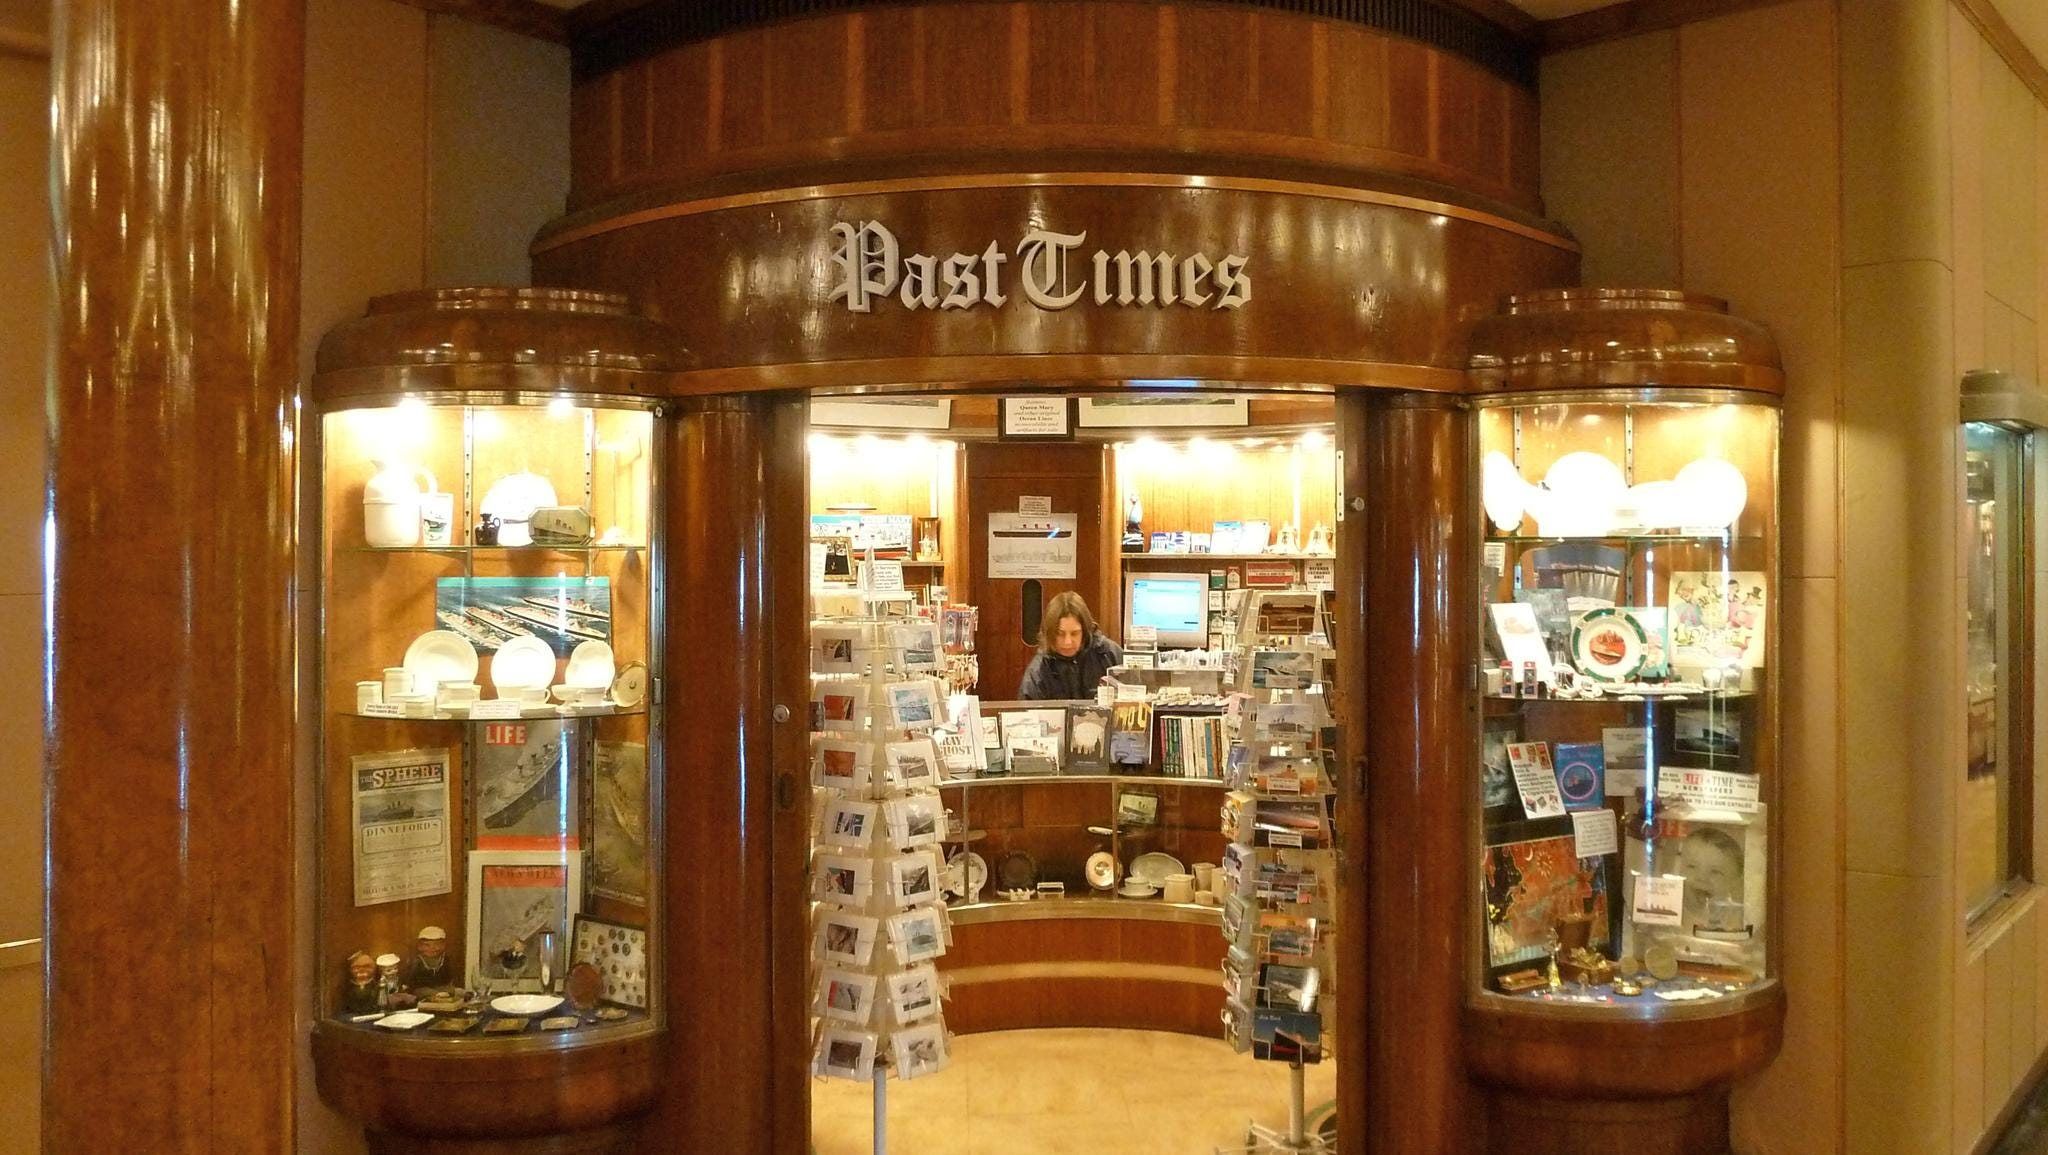 PastTimes Collectibles is one of several boutiques in the Main Hall. Its specialty is vintage ocean liner ephemera.